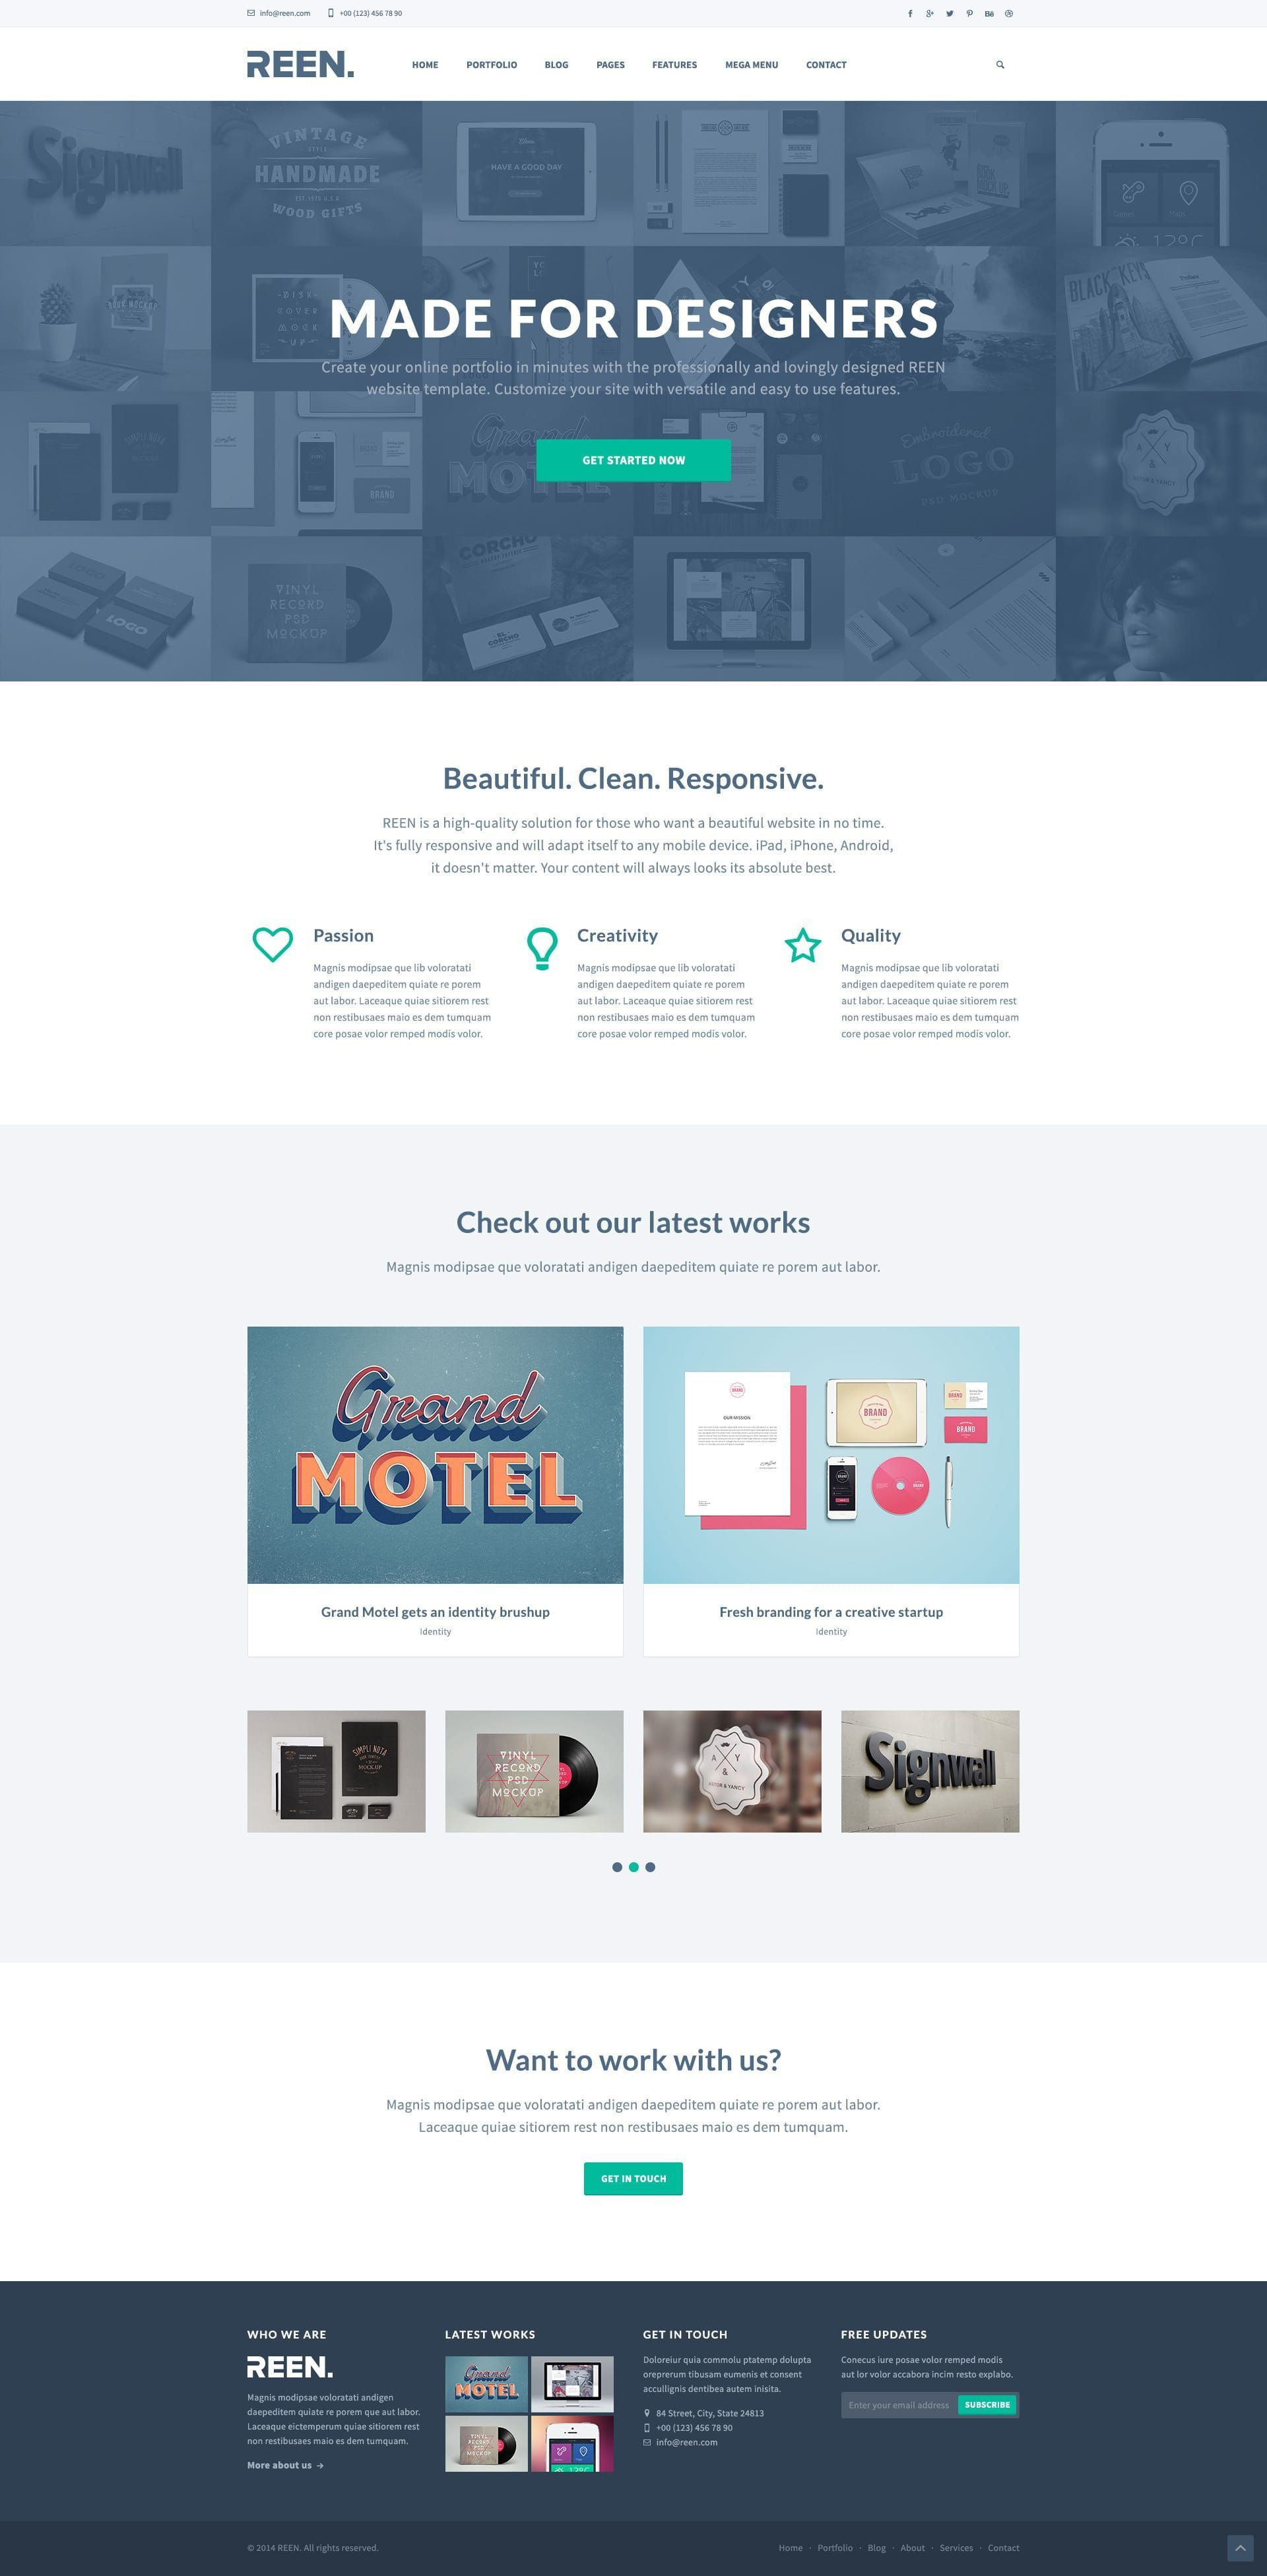 000 Amazing Website Template Html Free Download Inspiration  Indian School Software Company SpiceFull